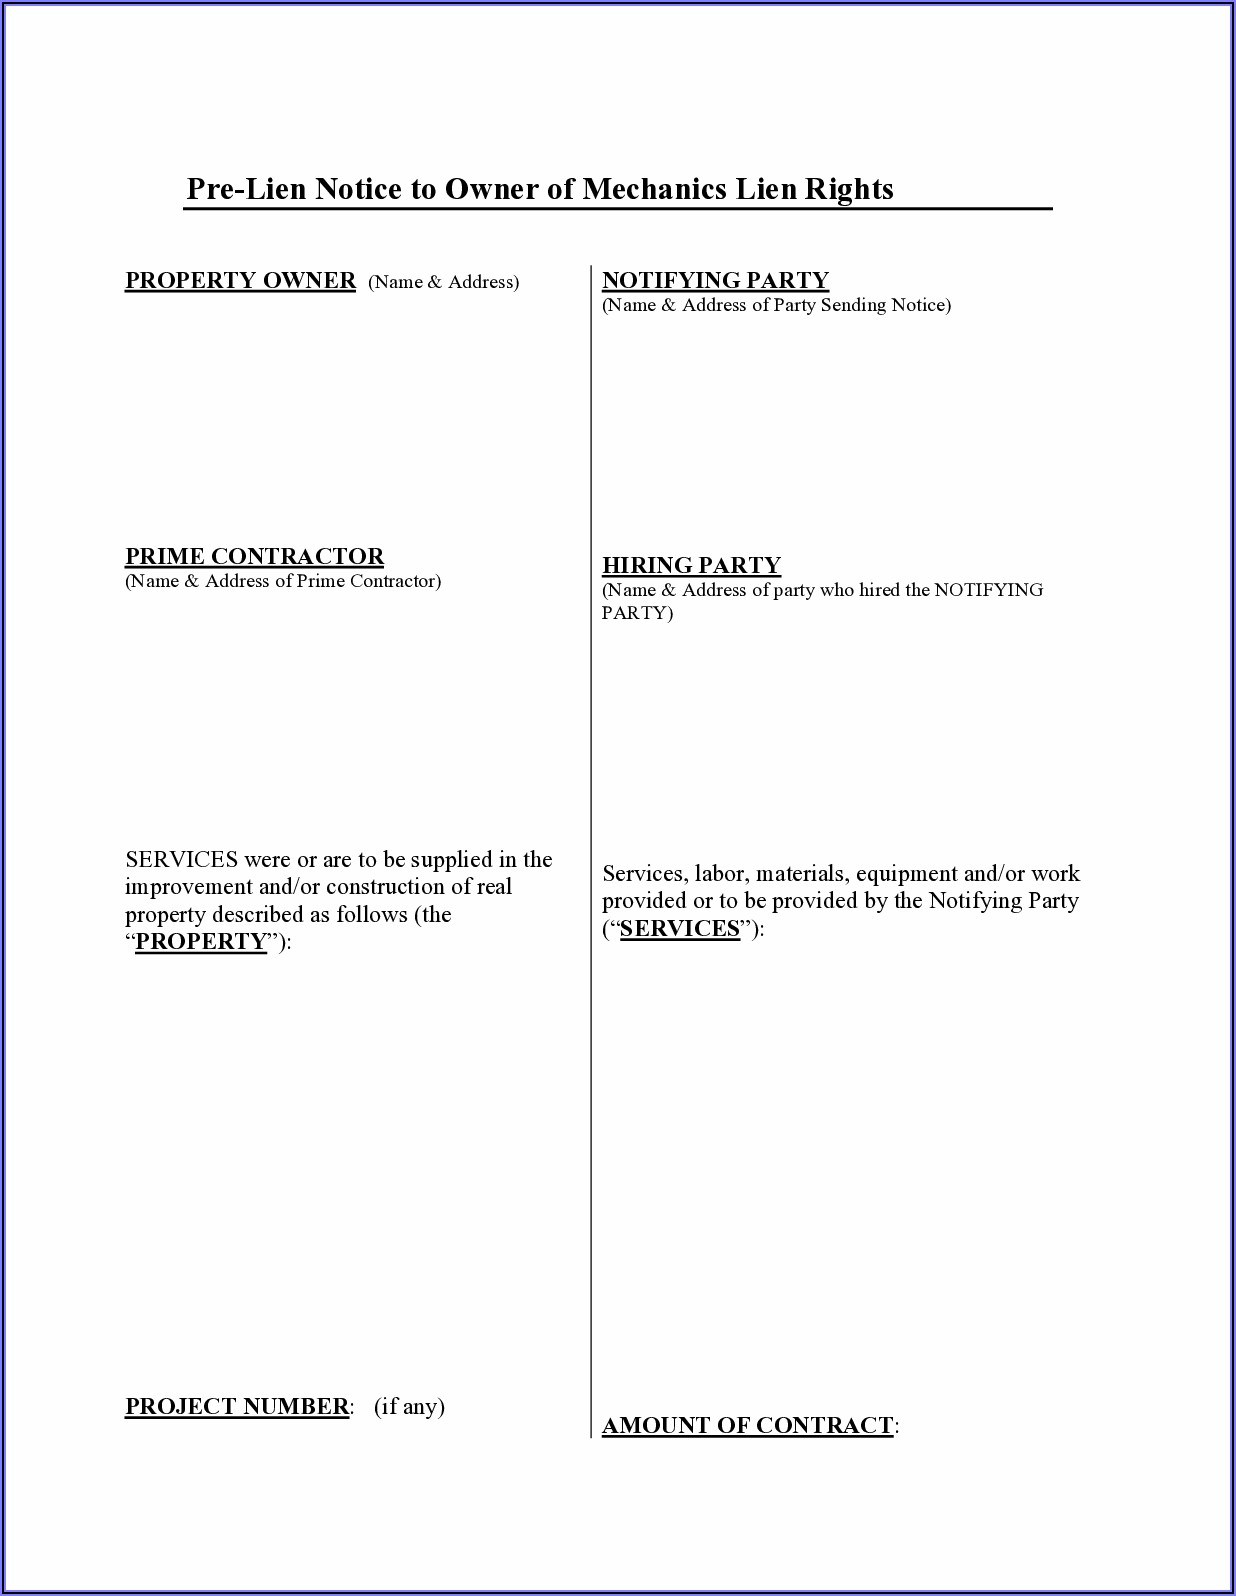 Indiana Construction Lien Forms